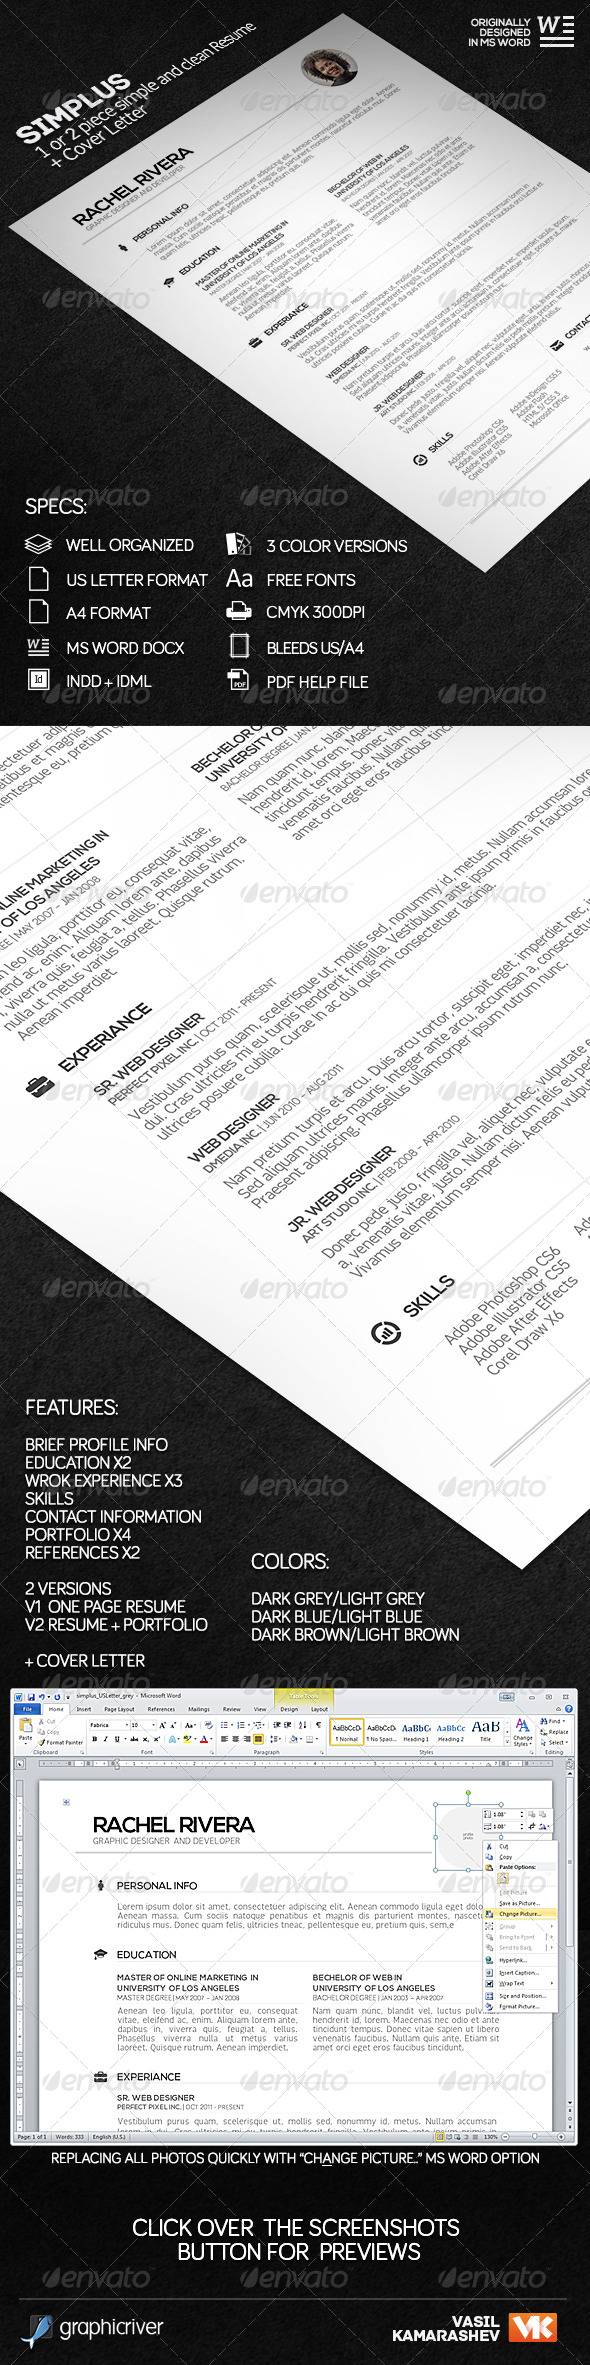 GraphicRiver SIMPLUS 1 or 2 Piece Simple and Clean Resume 7238629